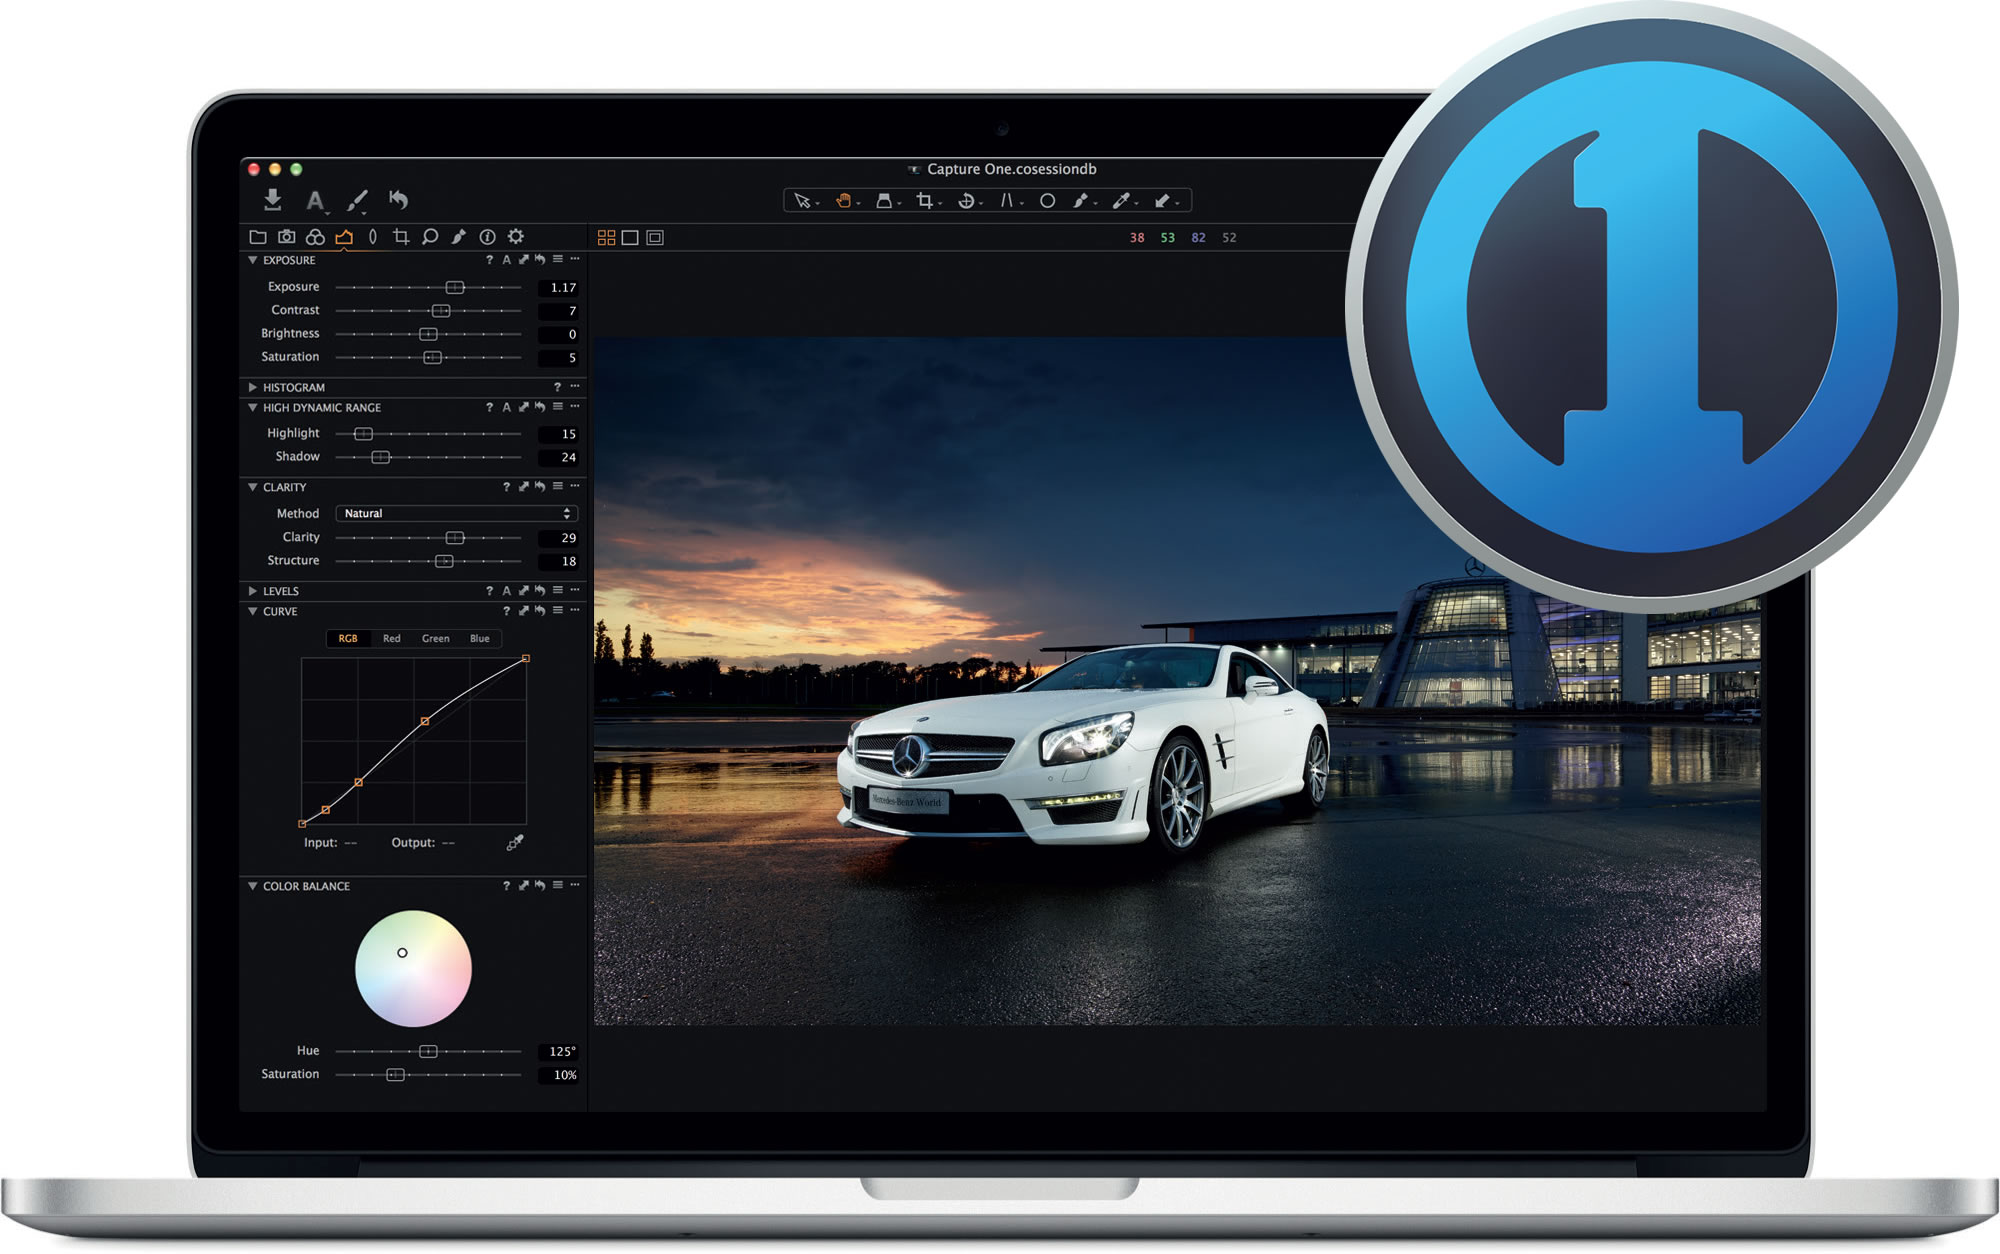 Phase One Capture One Pro 8 Software